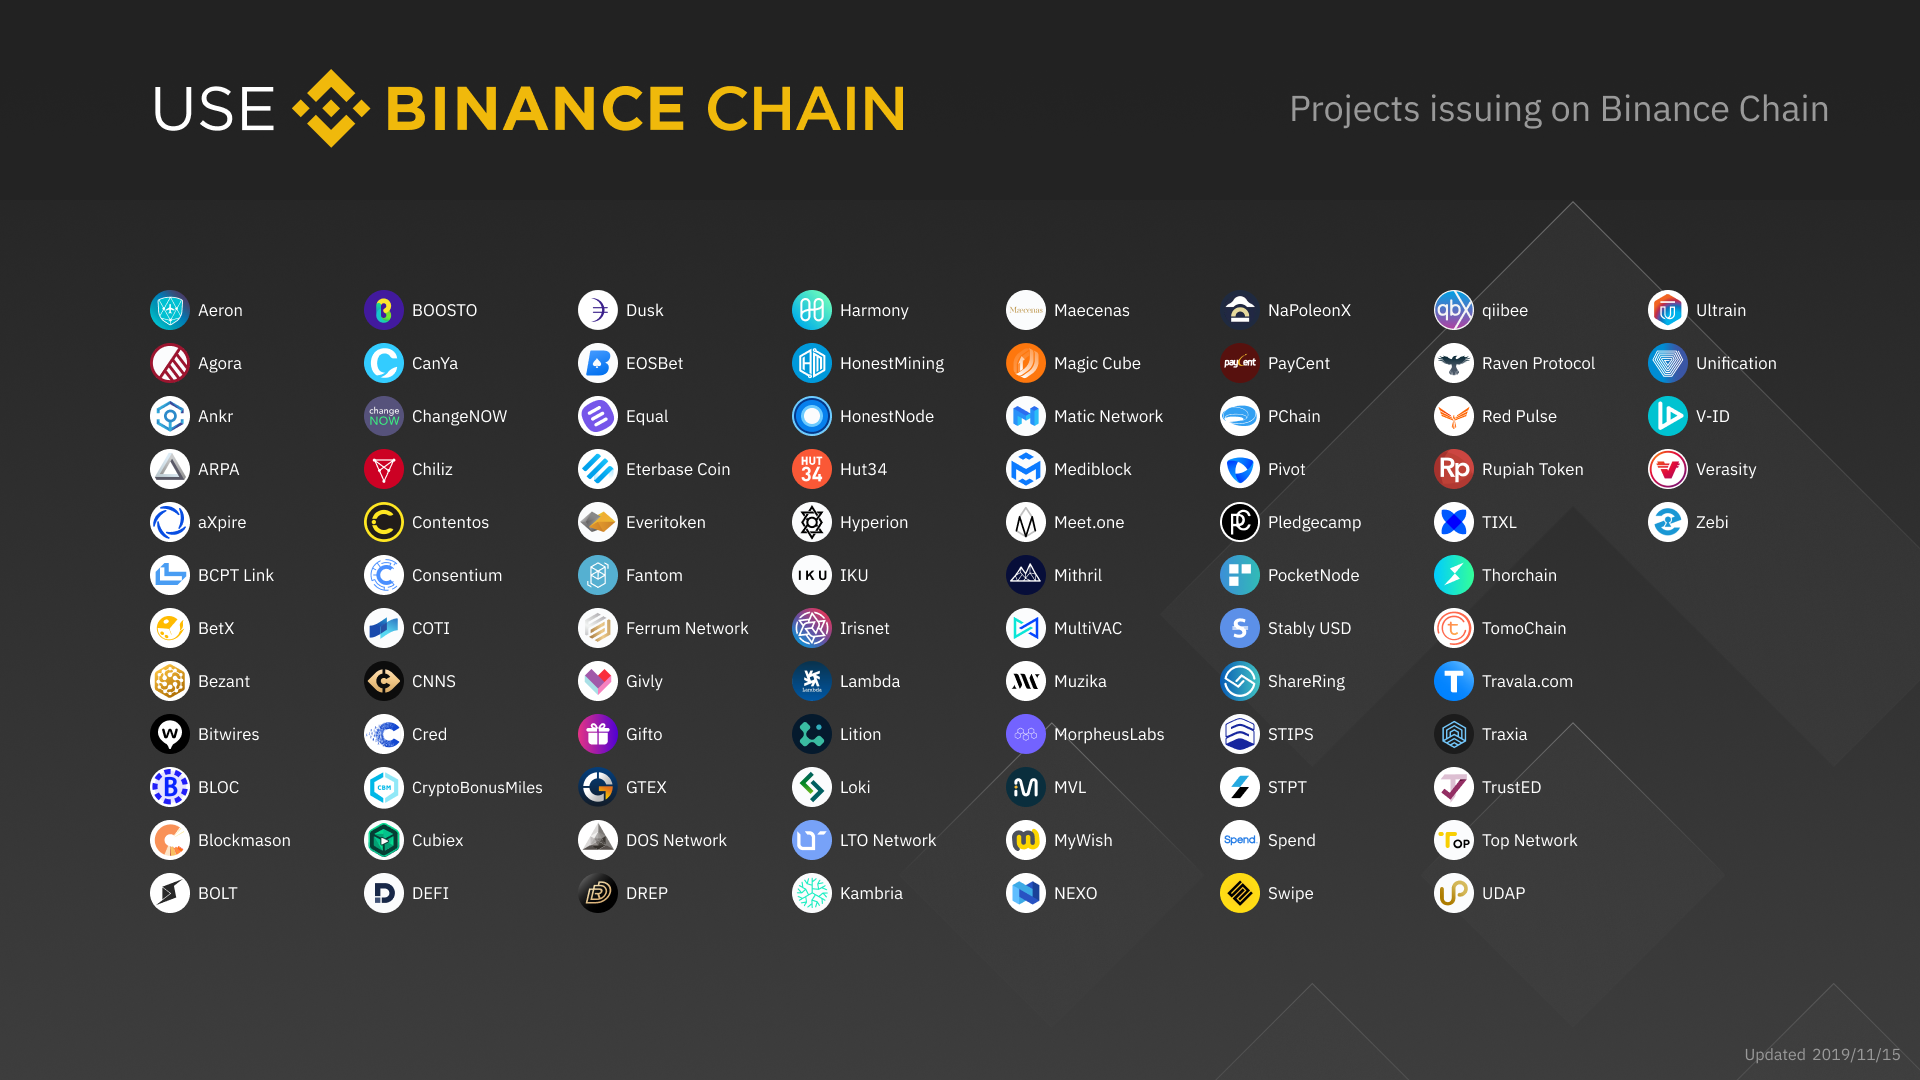 Organizations and projects in the Binance Chain ecosystem